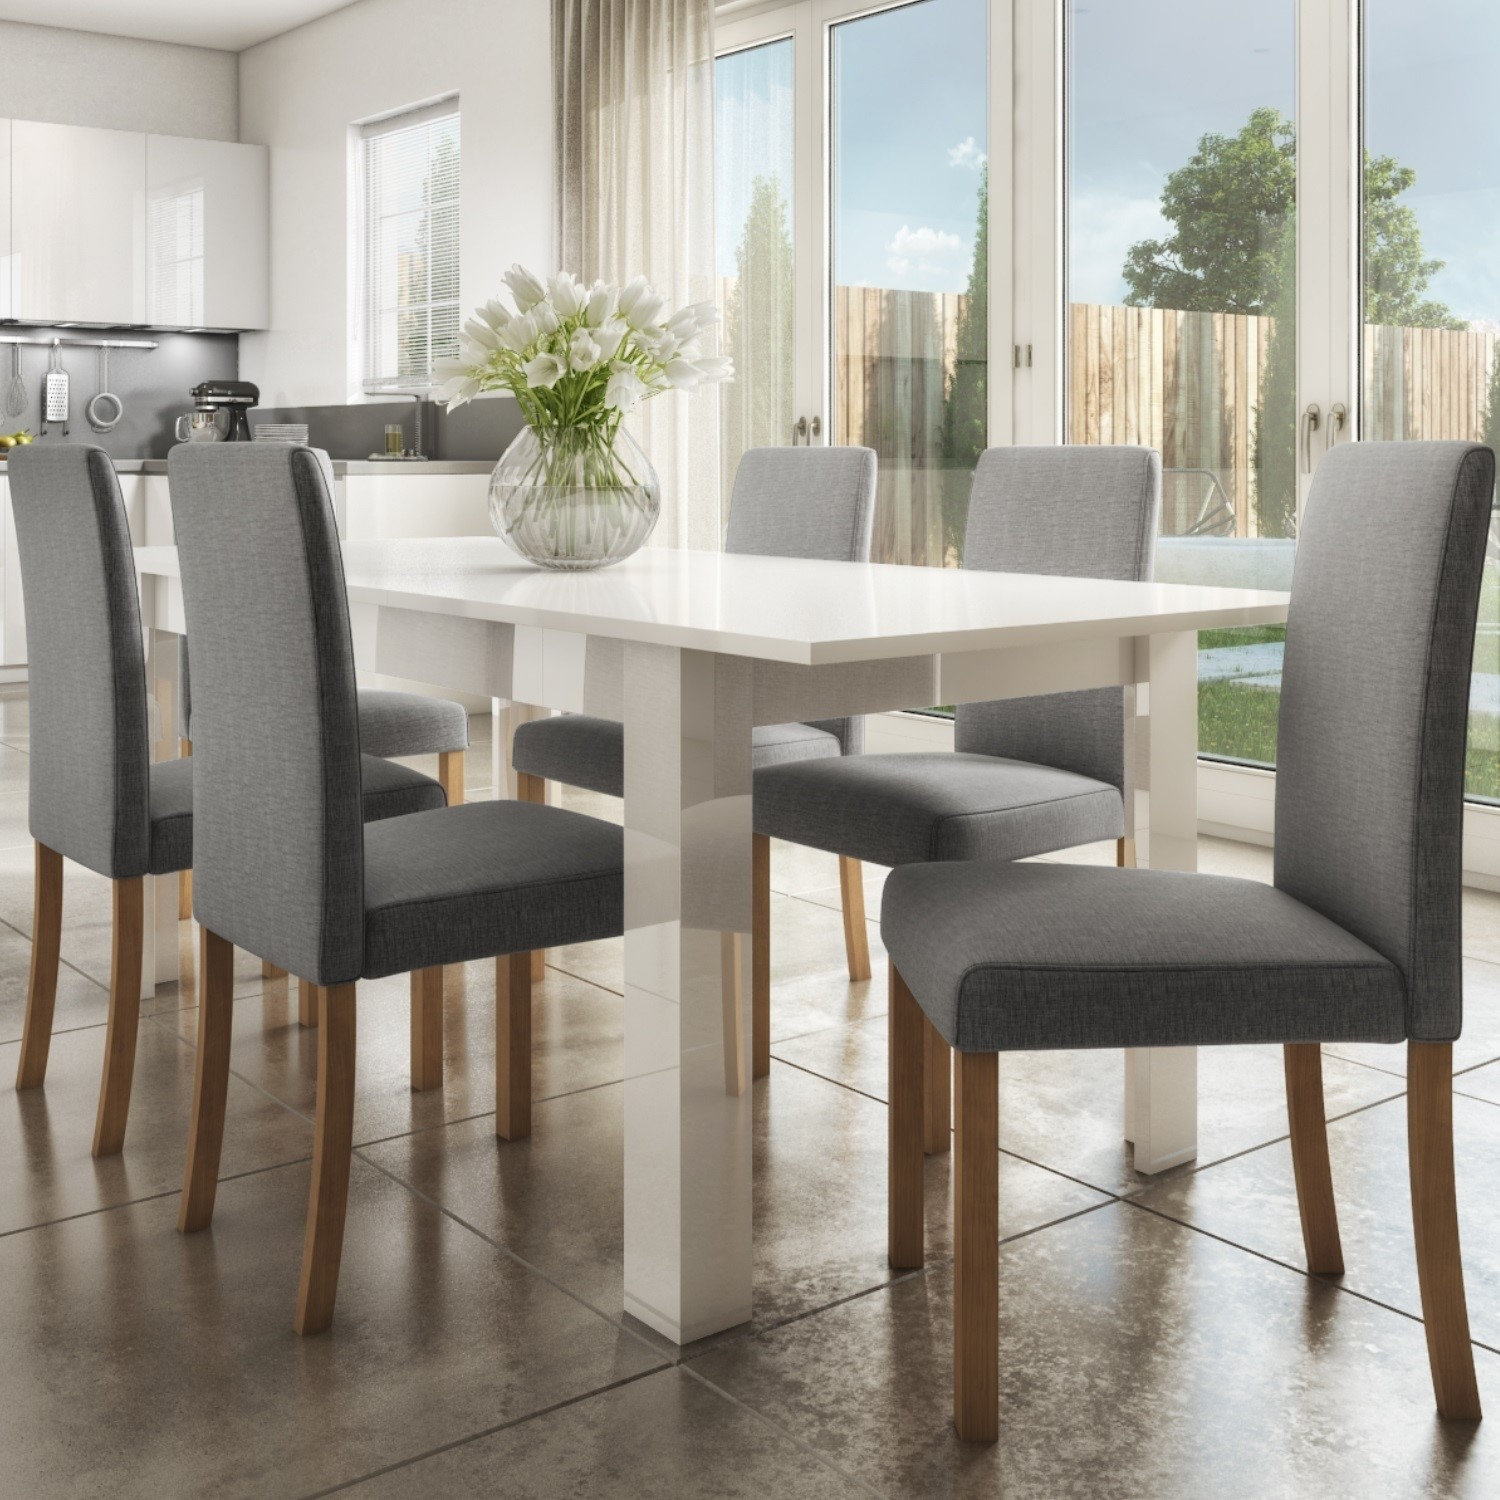 Extendable Dining Table In White High Gloss With 6 Grey Chairs Vivienne New Haven Furniture123